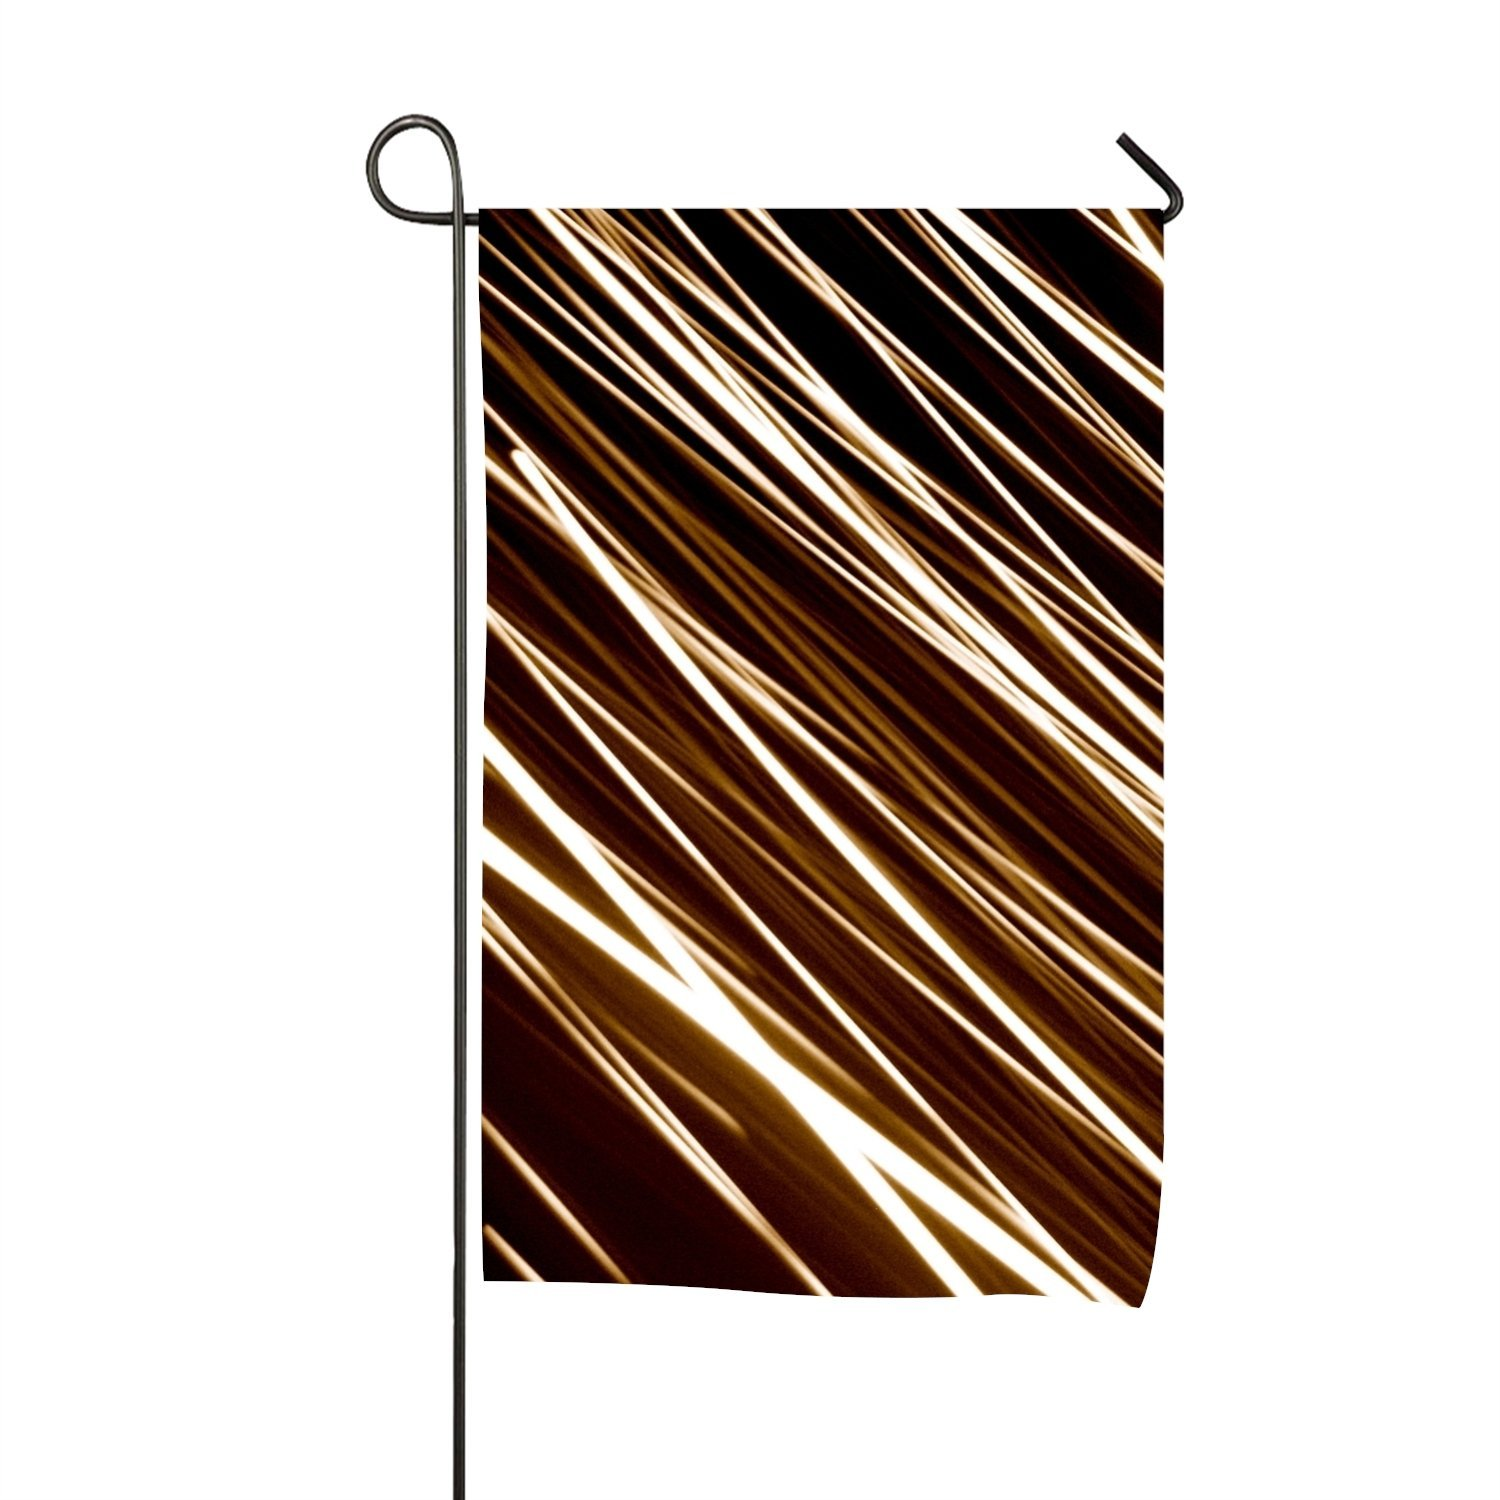 Amazon.com : Sbfhdy Thick Line Garden Flag Double-sided Vivid Color ...